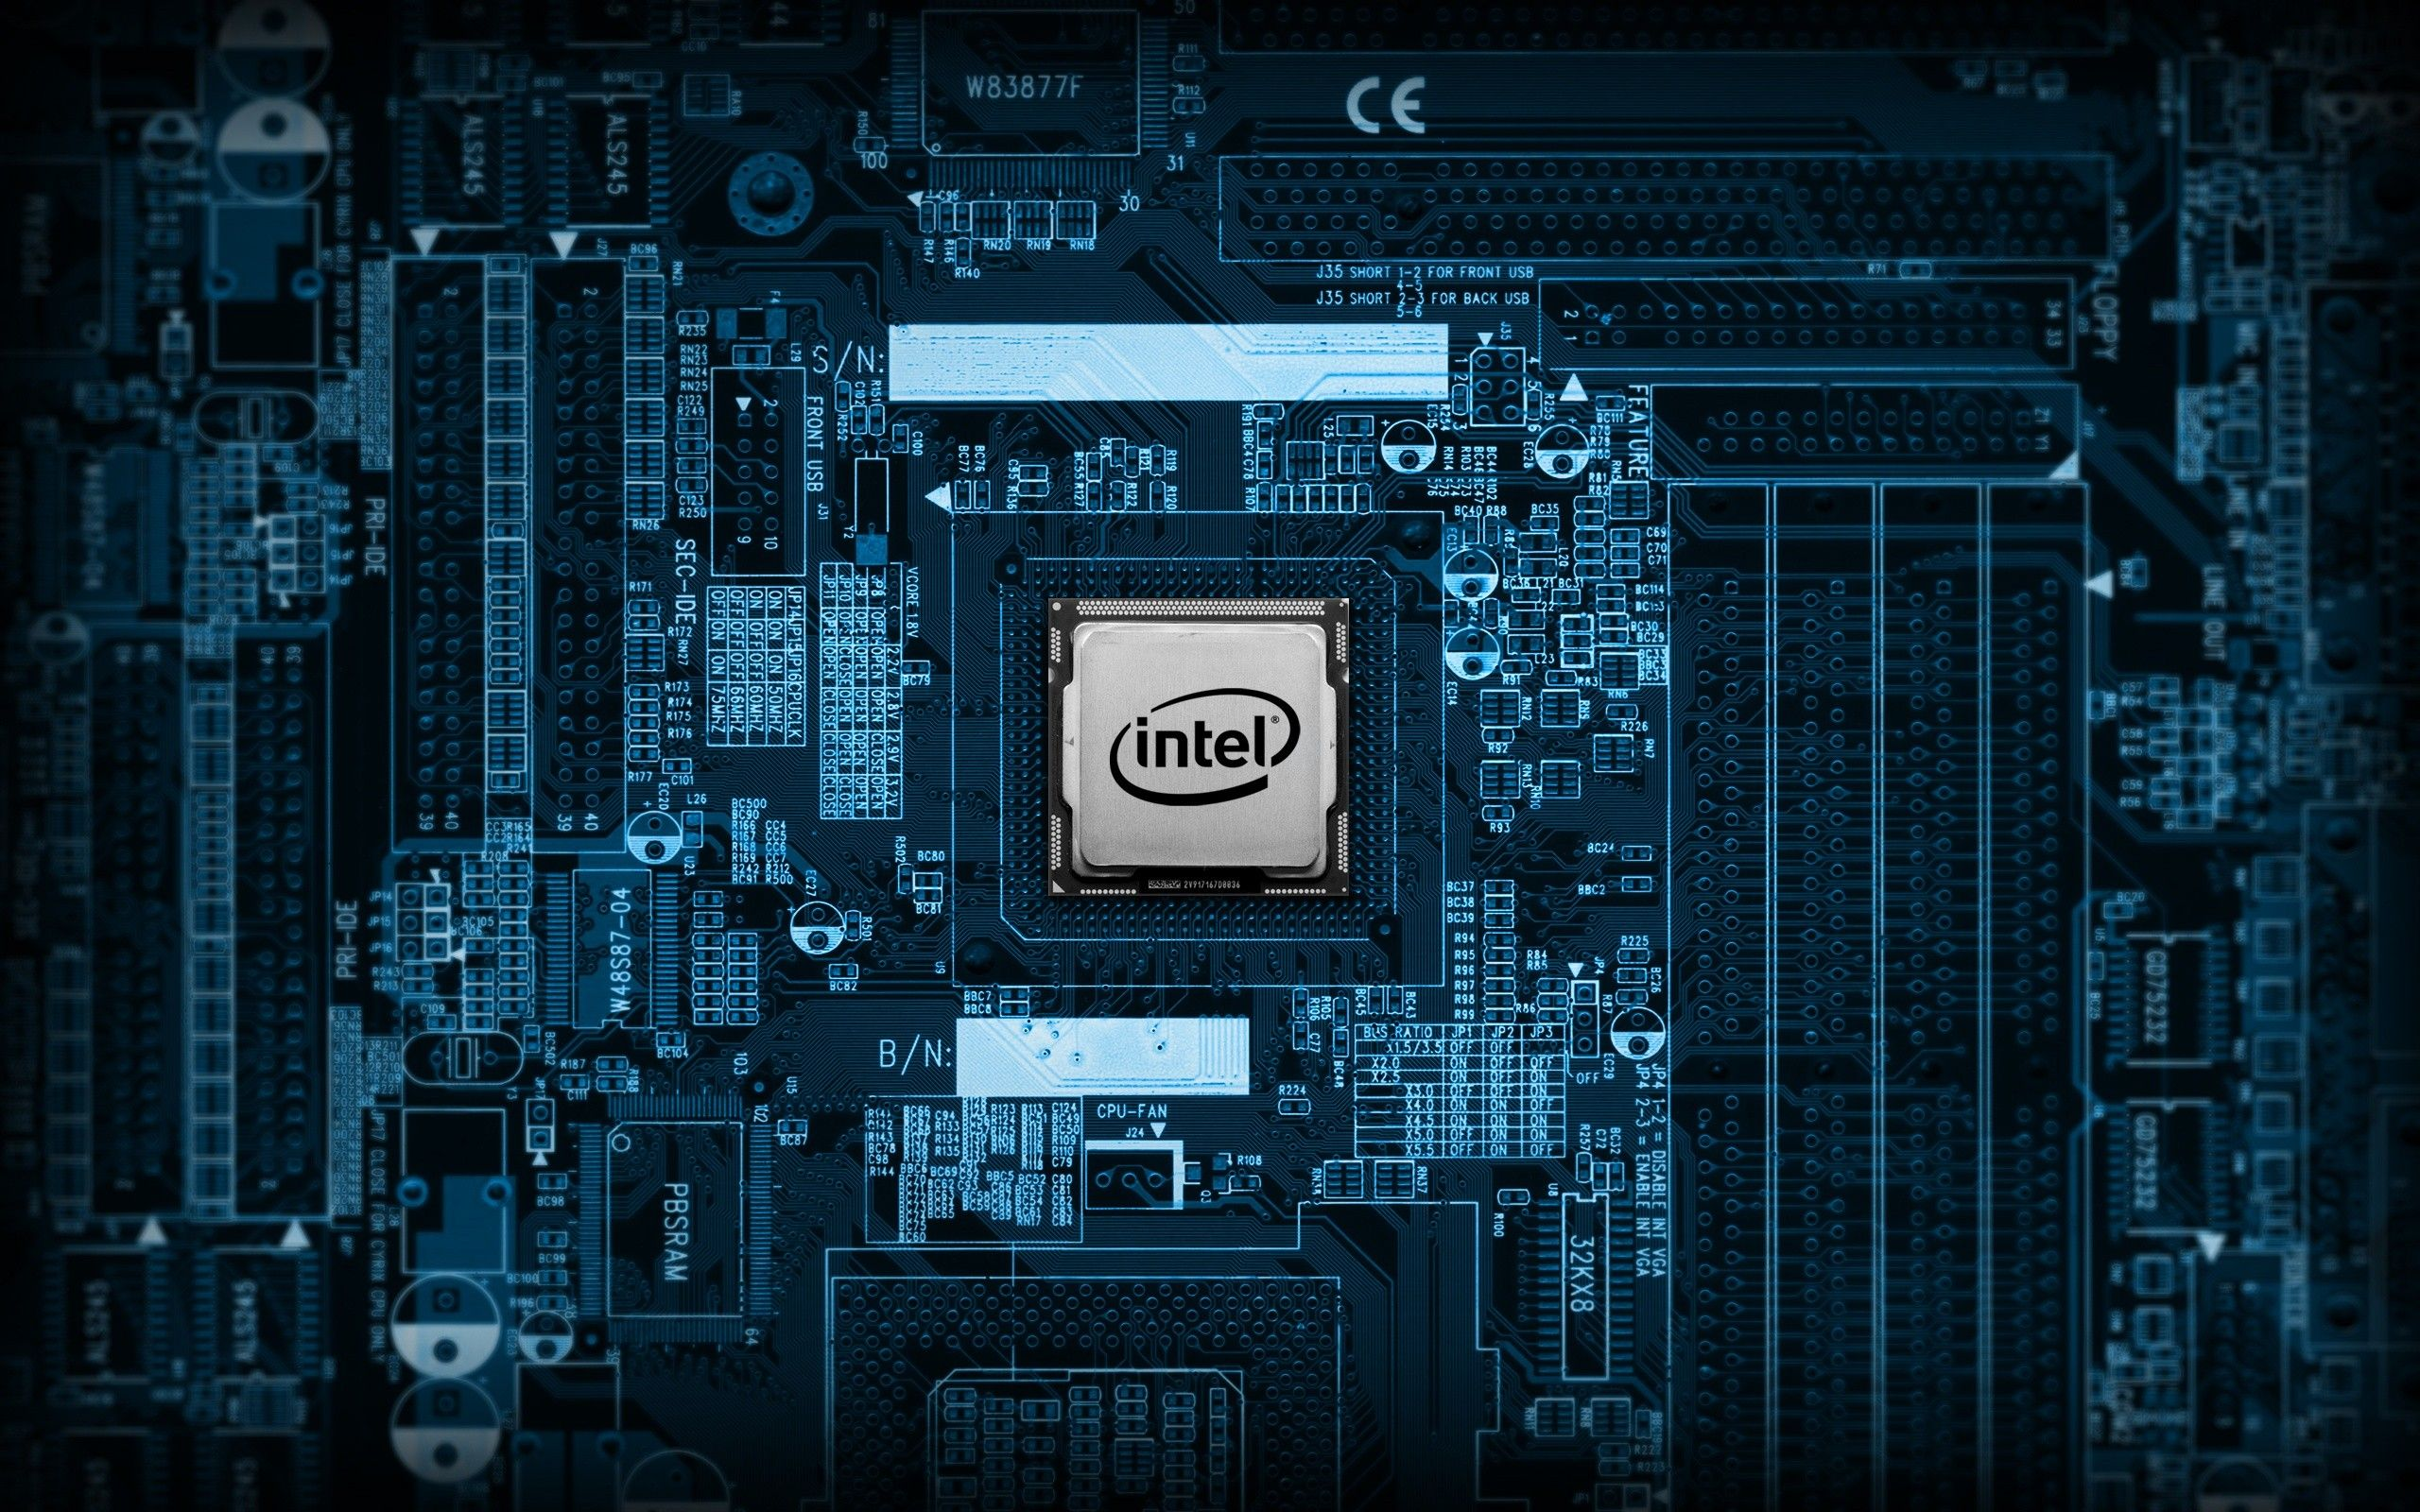 Image for Free Intel Inside Motherboard Technology HD Wallpaper | Tech Inspirations in 2019 ...